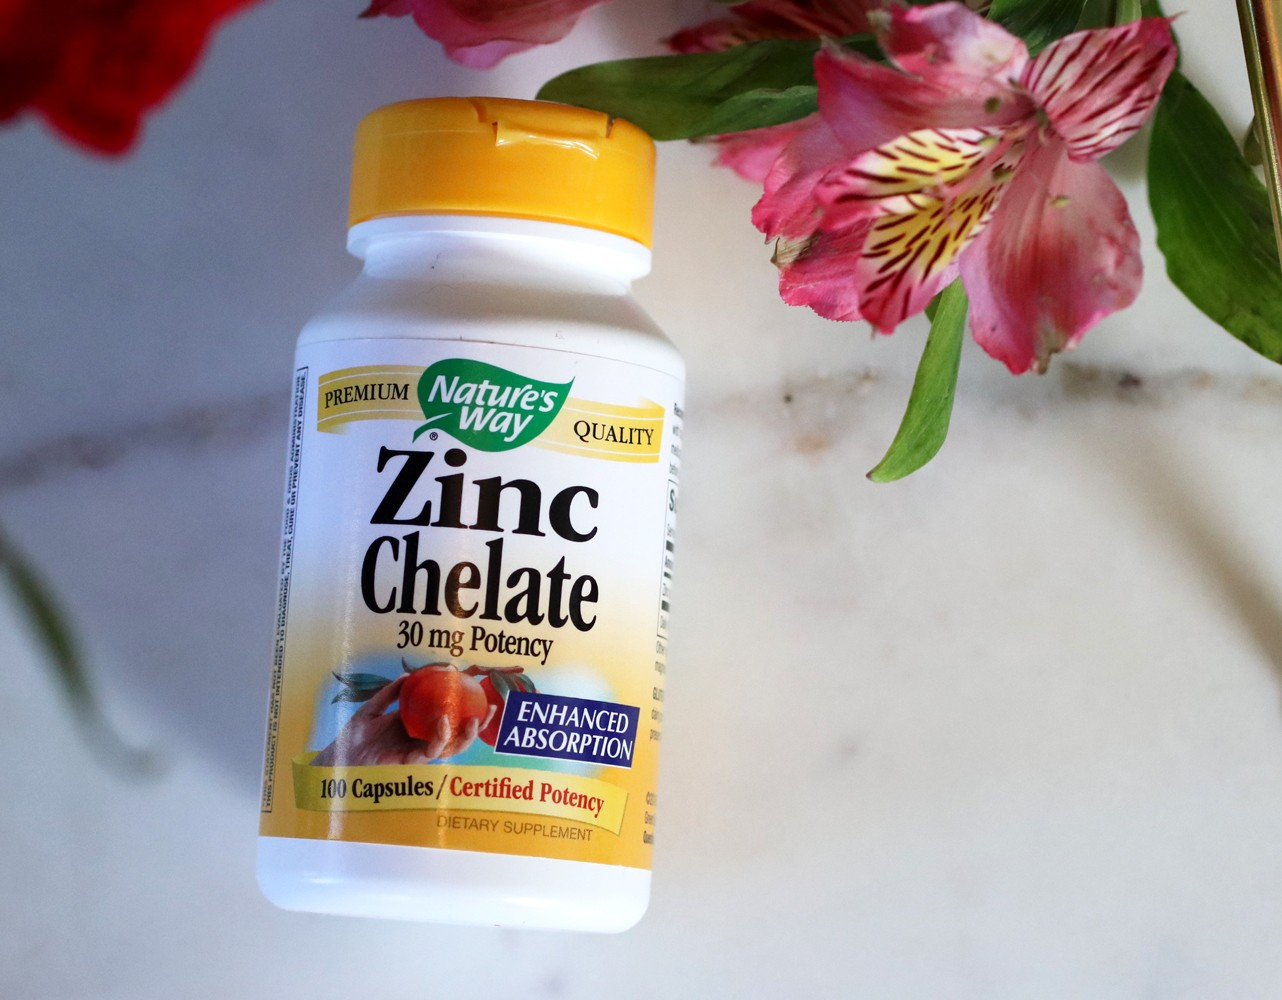 Best supplements for your immune system - Nature's Way from iHerb - Zinc Chelate